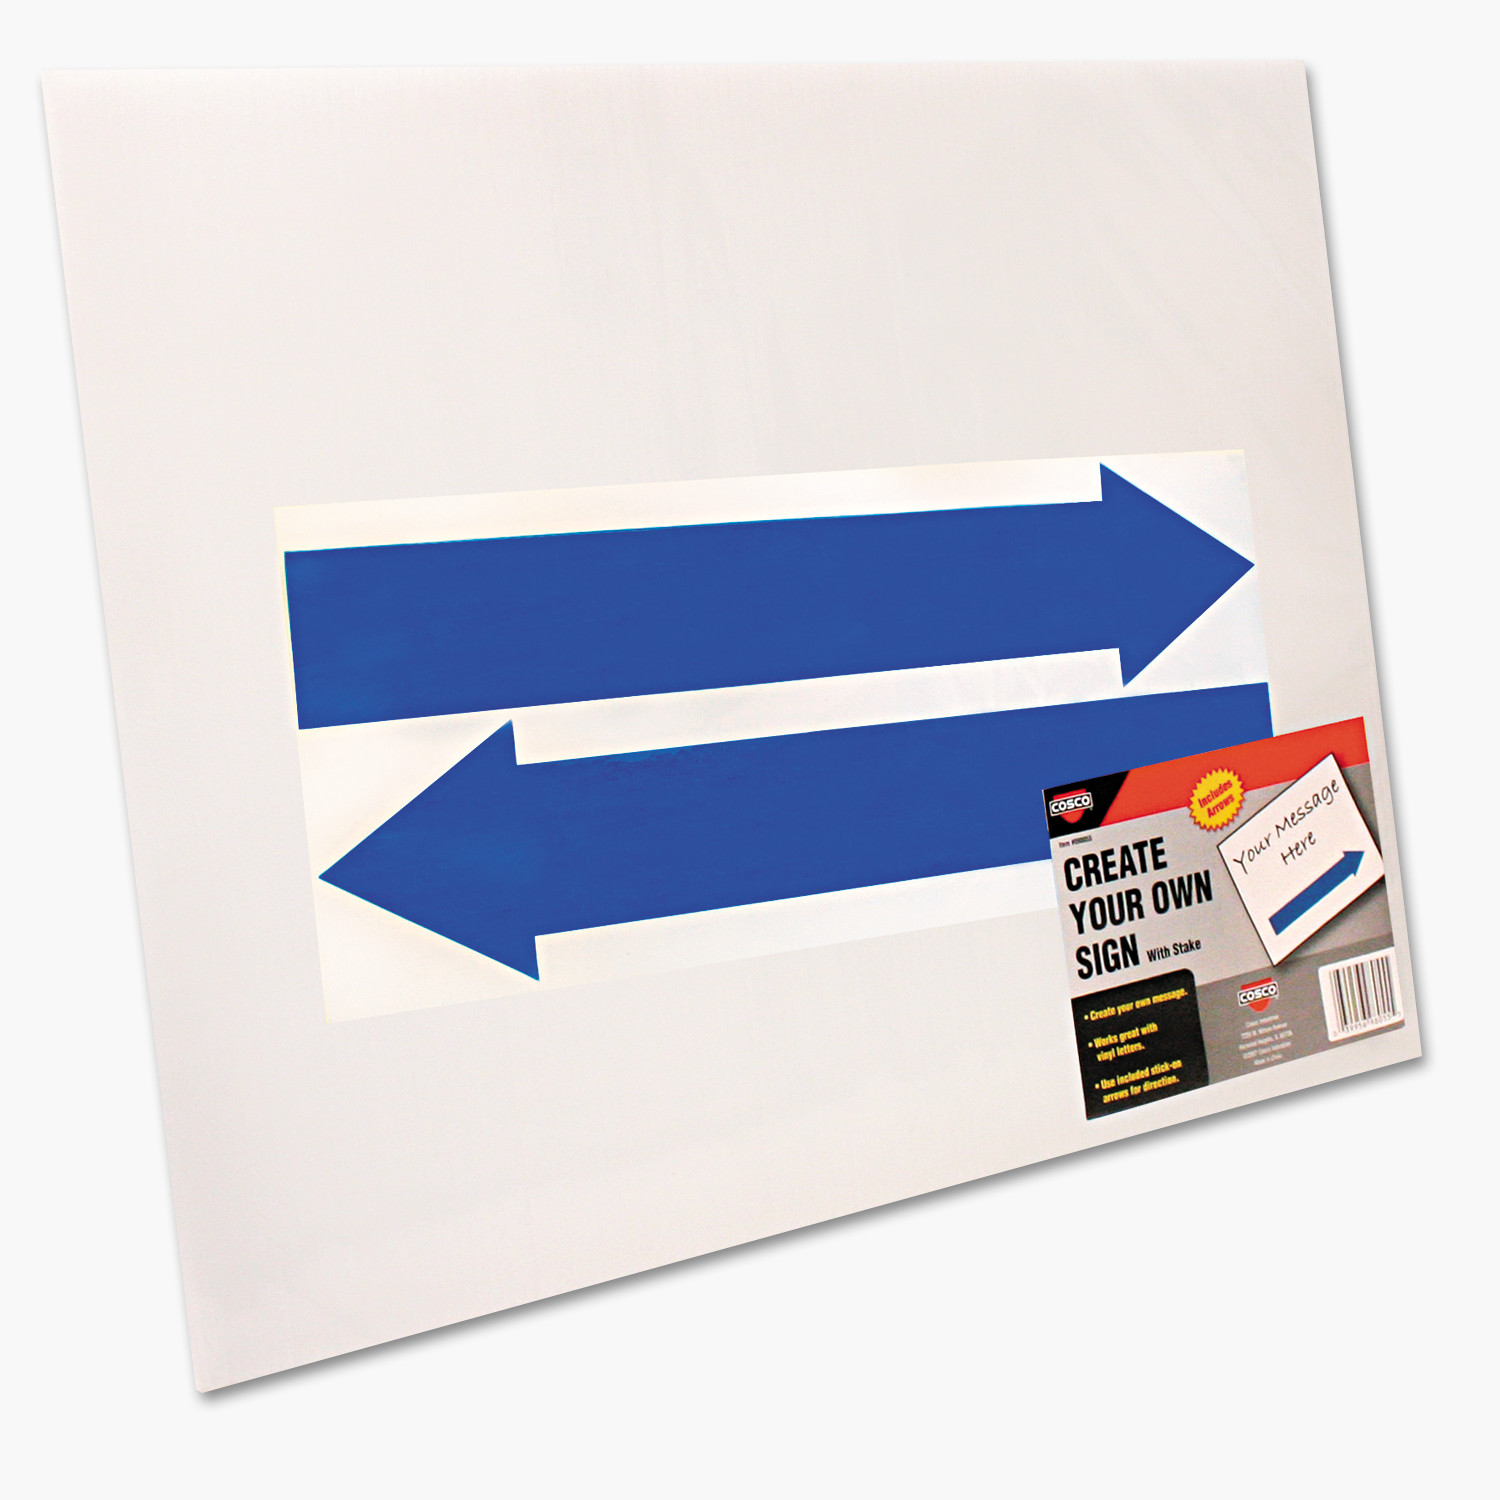 COSCO Stake Sign, Blank White, Includes Directional Arrows, 15 x 19 -COS098055 by CONSOLIDATED STAMP